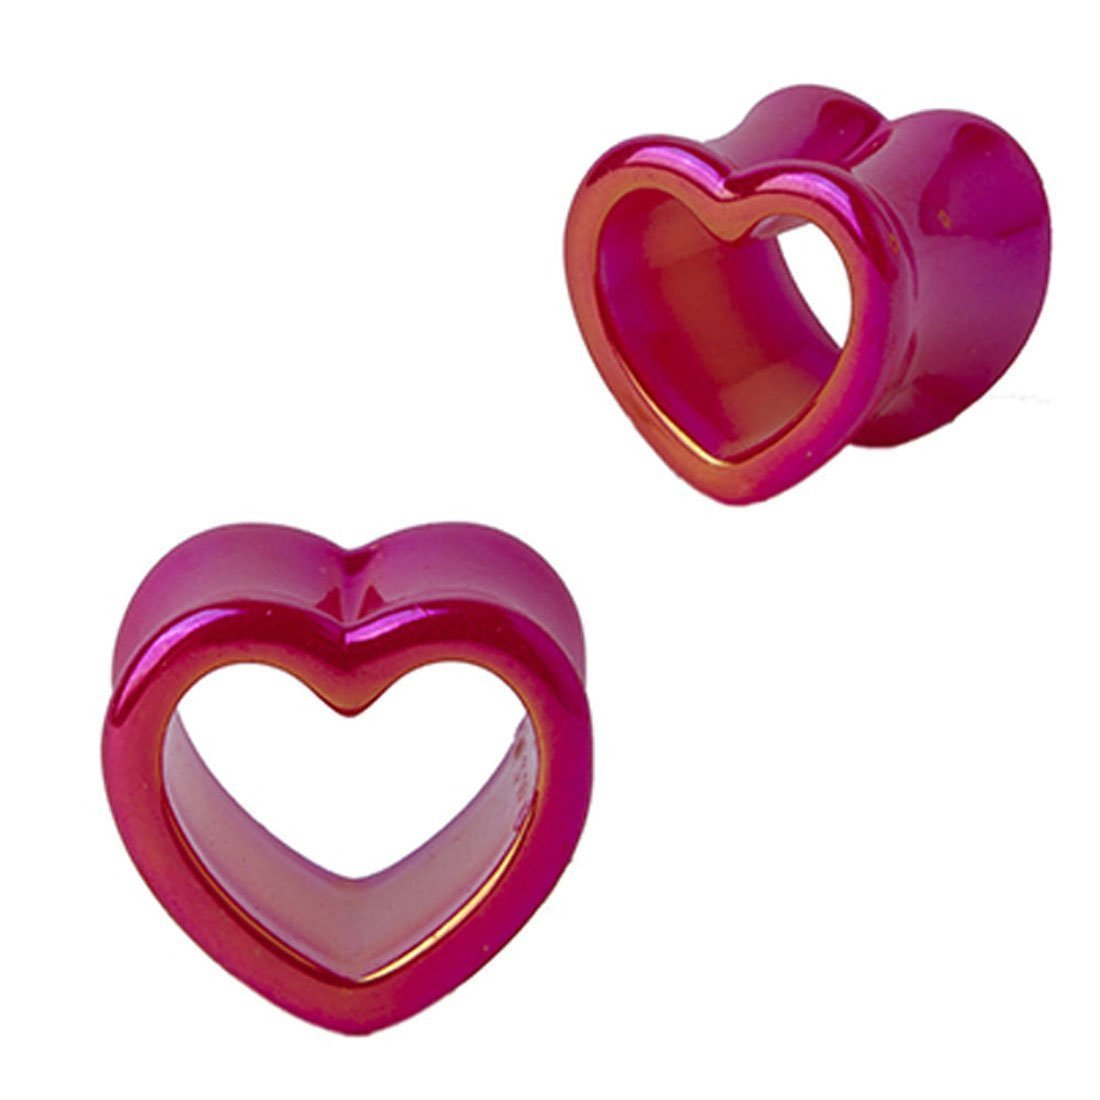 BodyJ4You Plugs Glossy Heart Tunnel Acrylic Ear Stretcher Expander Gauges 2G-14mm (2 Pieces) PL6019-0G